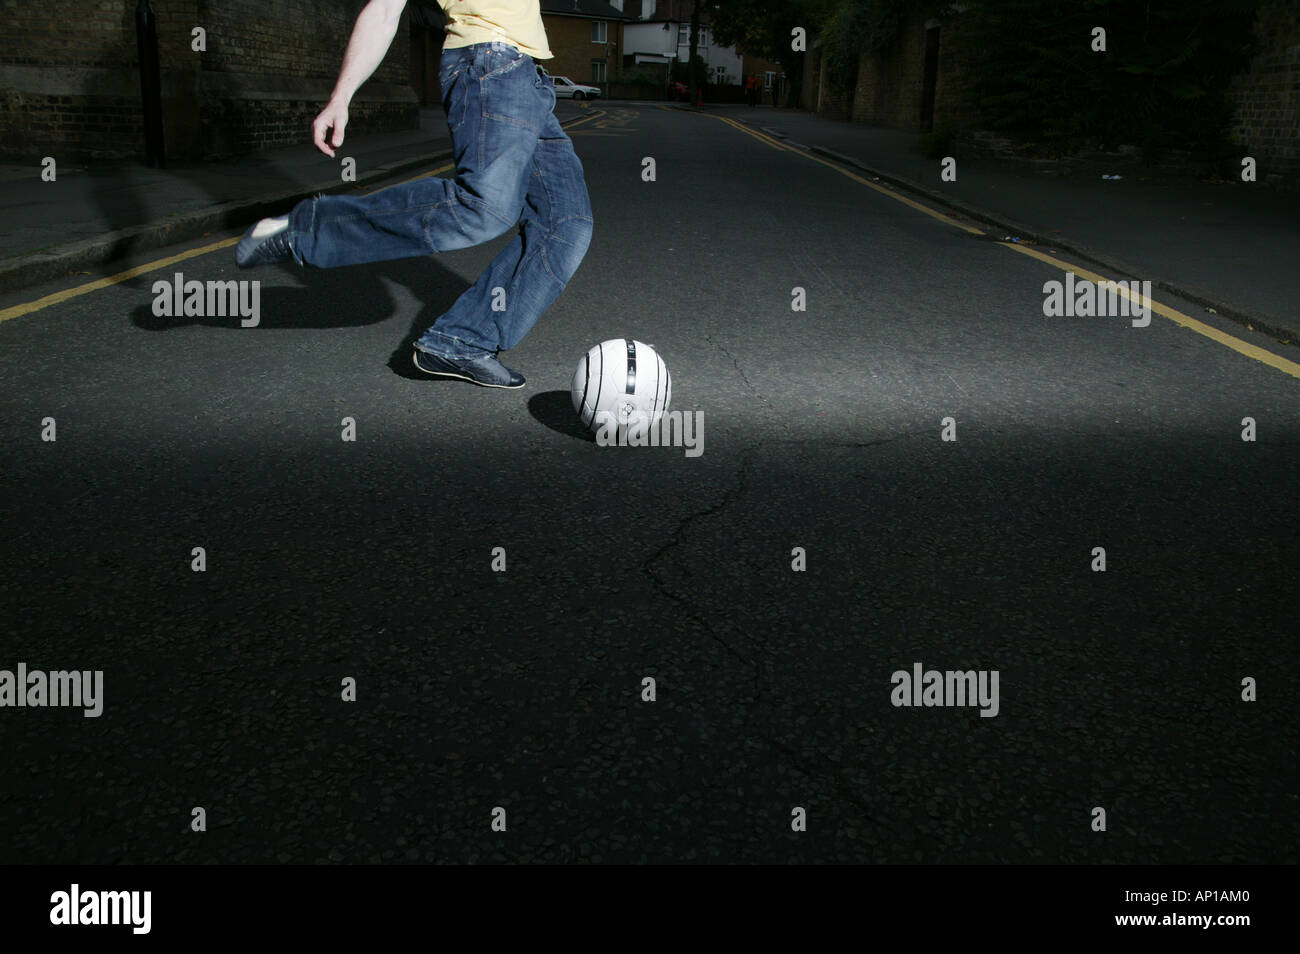 Man Kicking A Football At Night   Stock Image